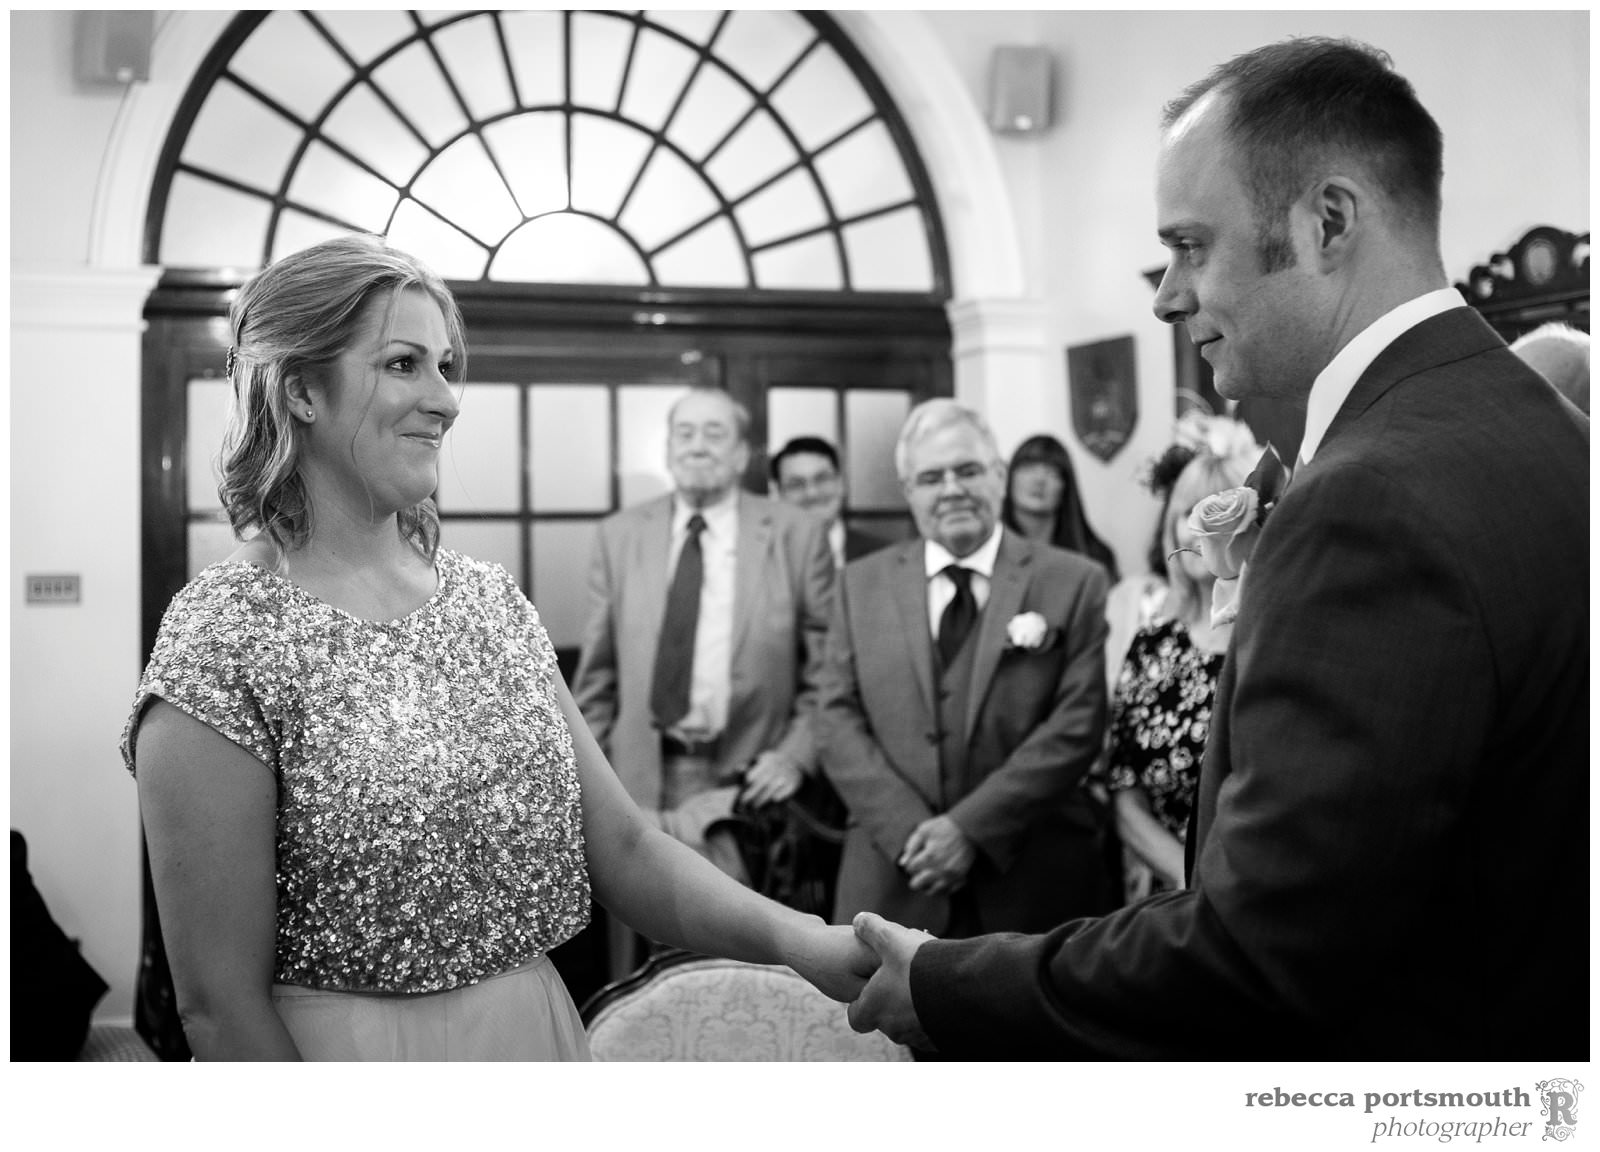 The Chelsea Registry Office wedding photos of Victoria + Dominic: their exchange of vows and rings in the Rossetti Room